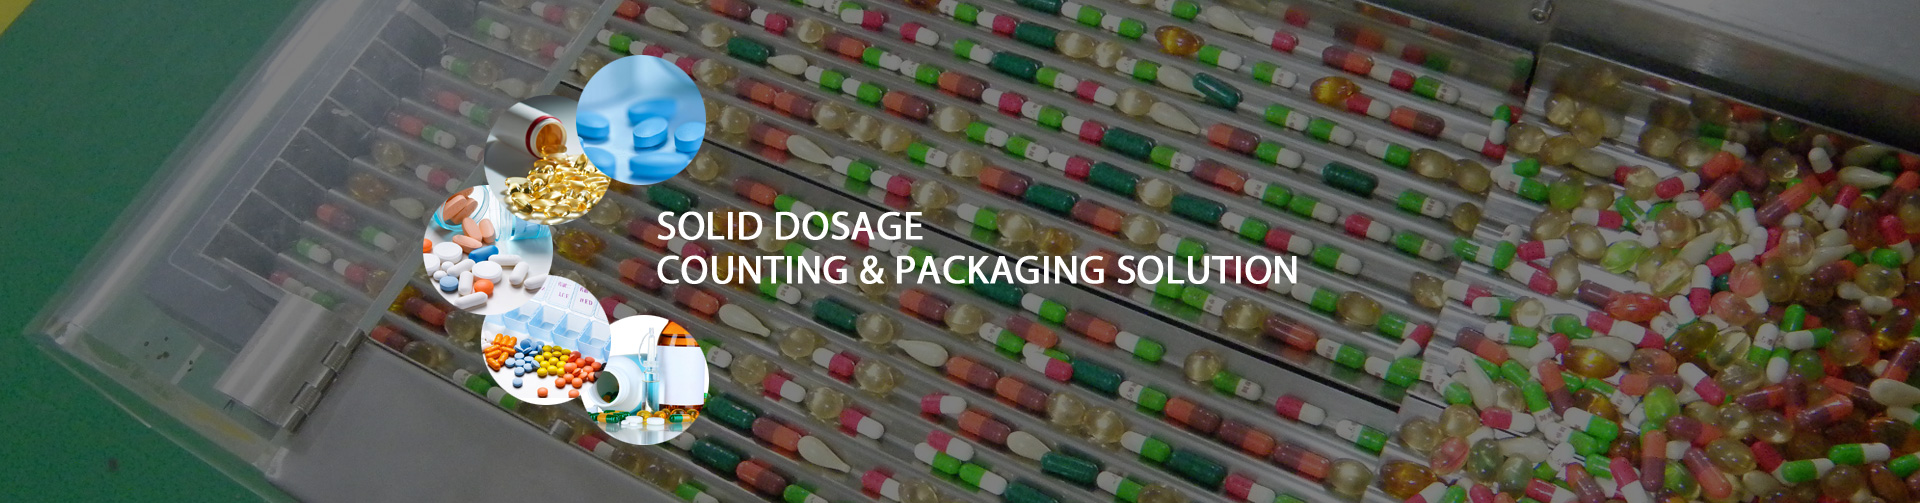 Counting & Packaging Solution